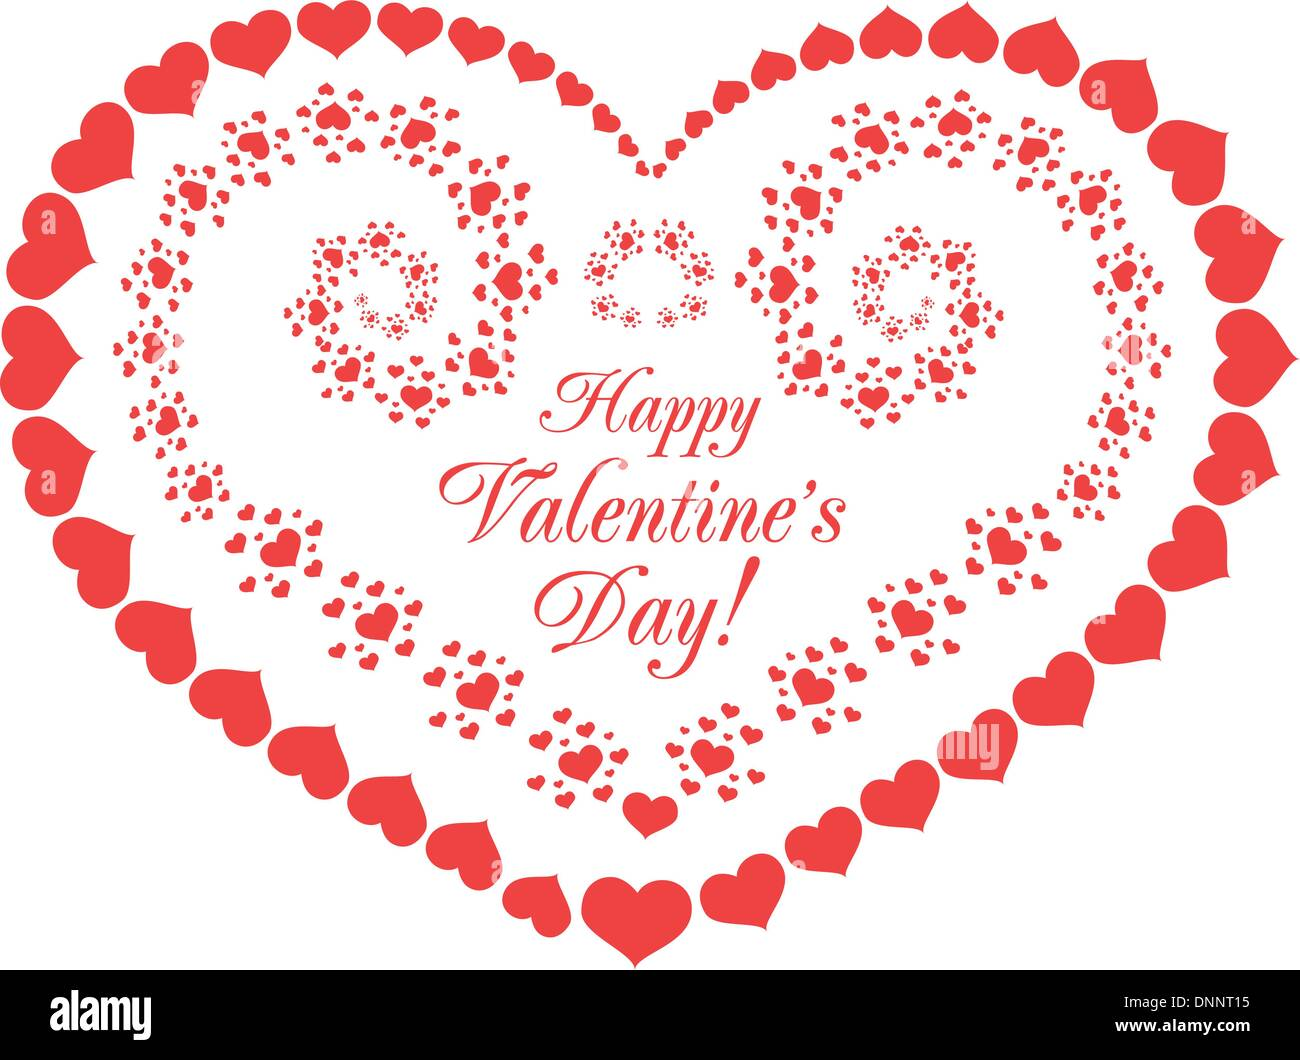 Saint-valentin vector background with hearts on white Photo Stock